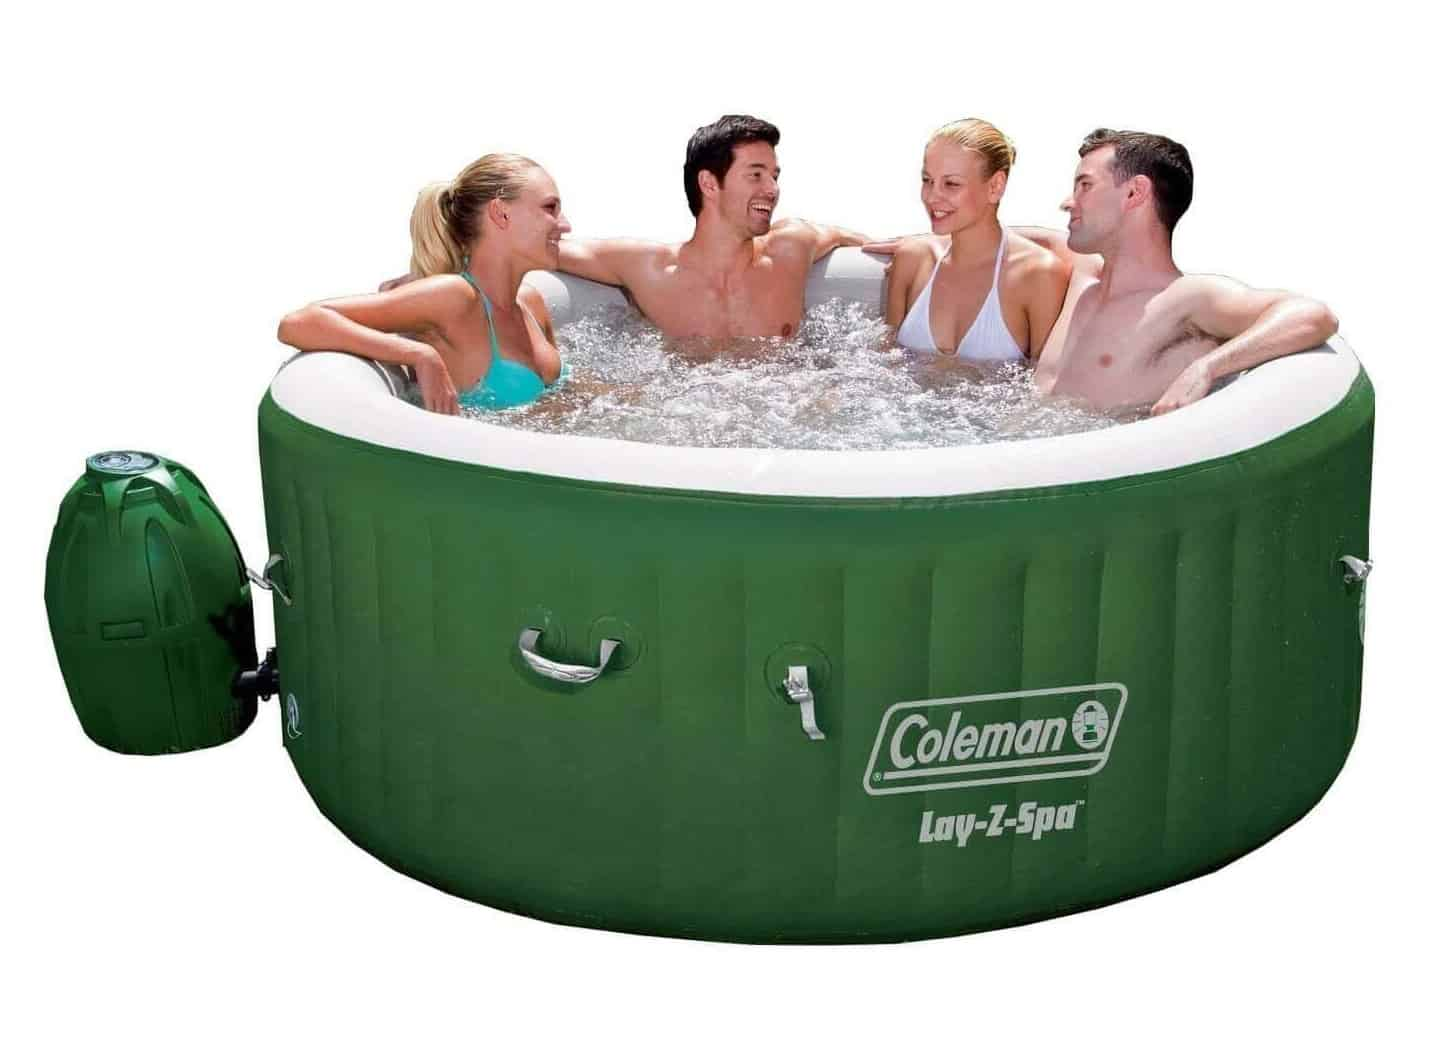 Coleman-Lay-Z-Spa-Inflatable-Hot-Tub Review